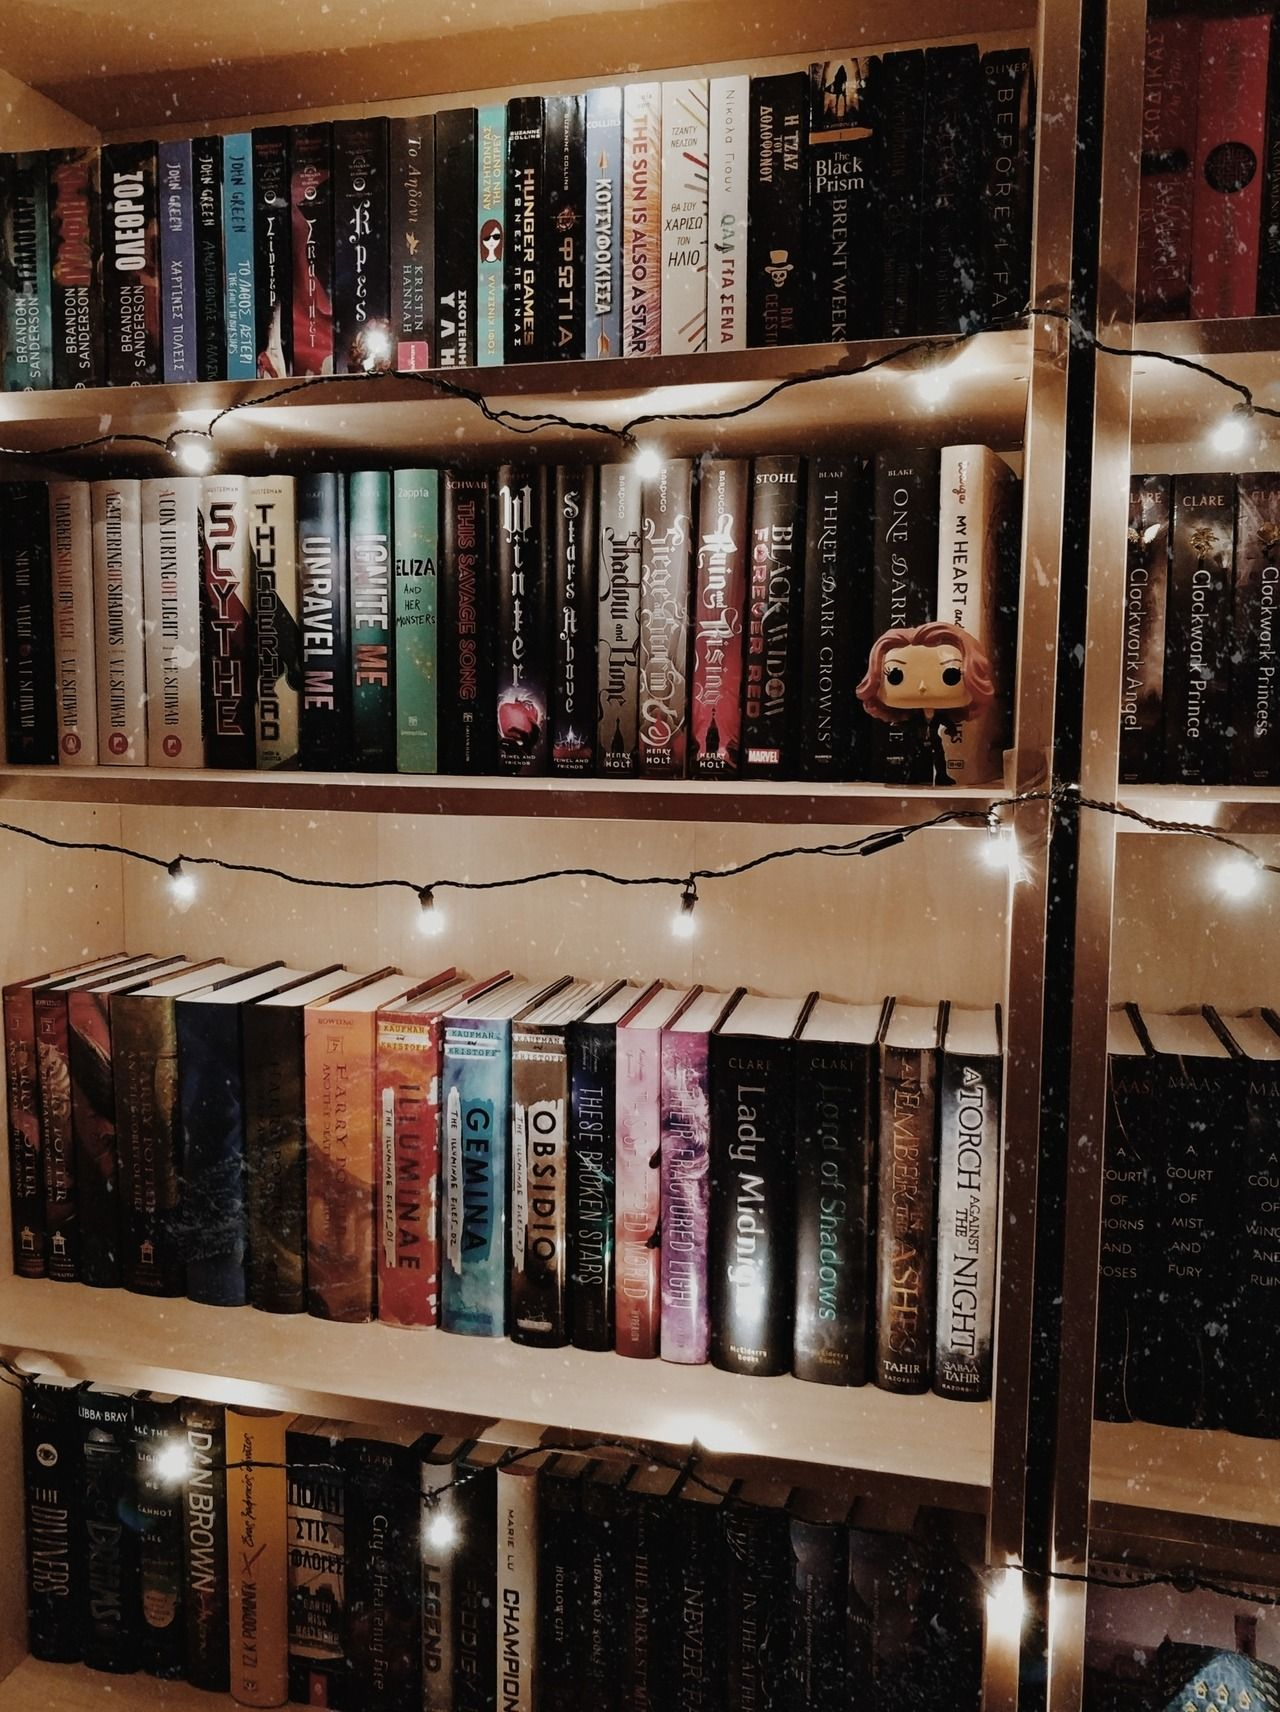 Rearranged My Shelves Tumblr Bookshelf Book Aesthetic Photo Shelfie